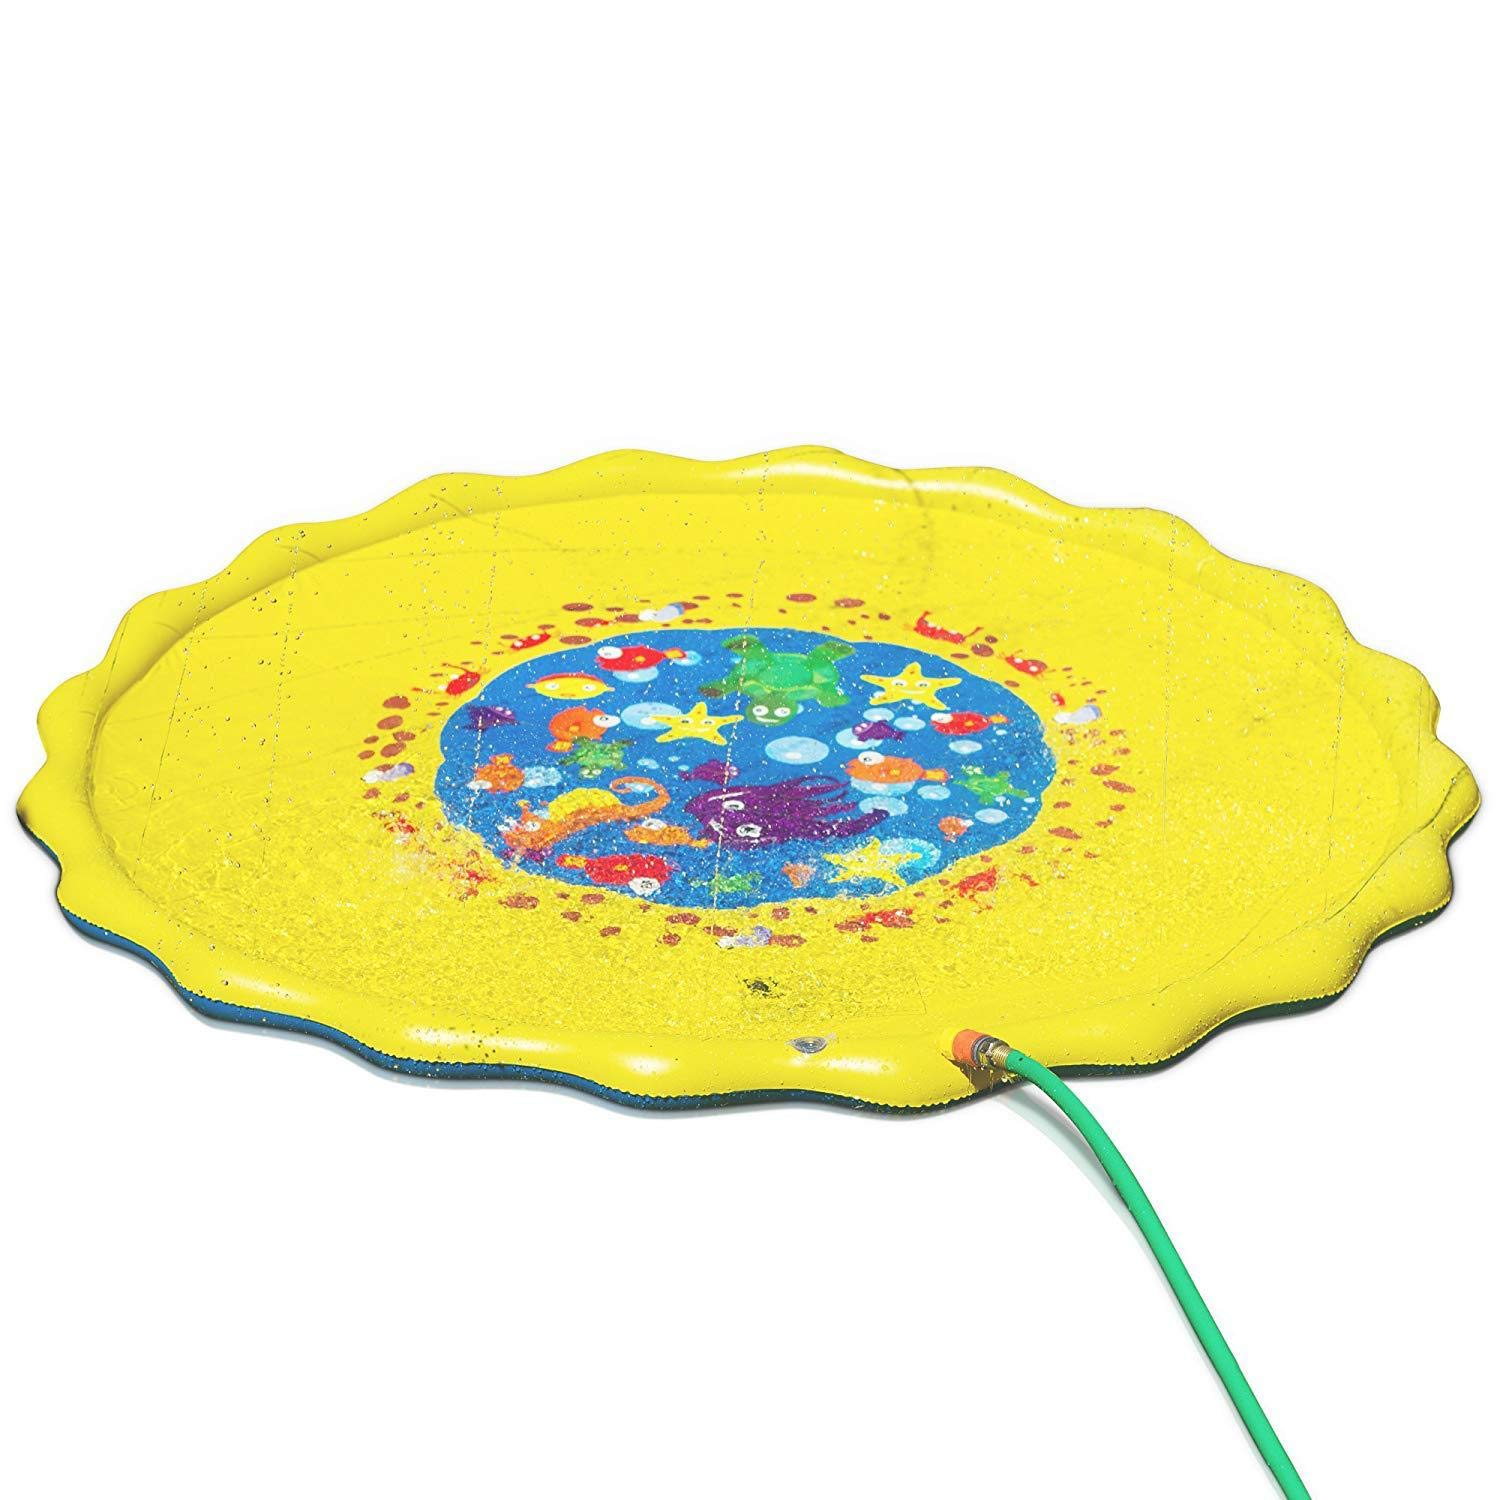 PinShang 170CM Diameter Kids Water Spraying Game Mat Toy by PinShang (Image #1)